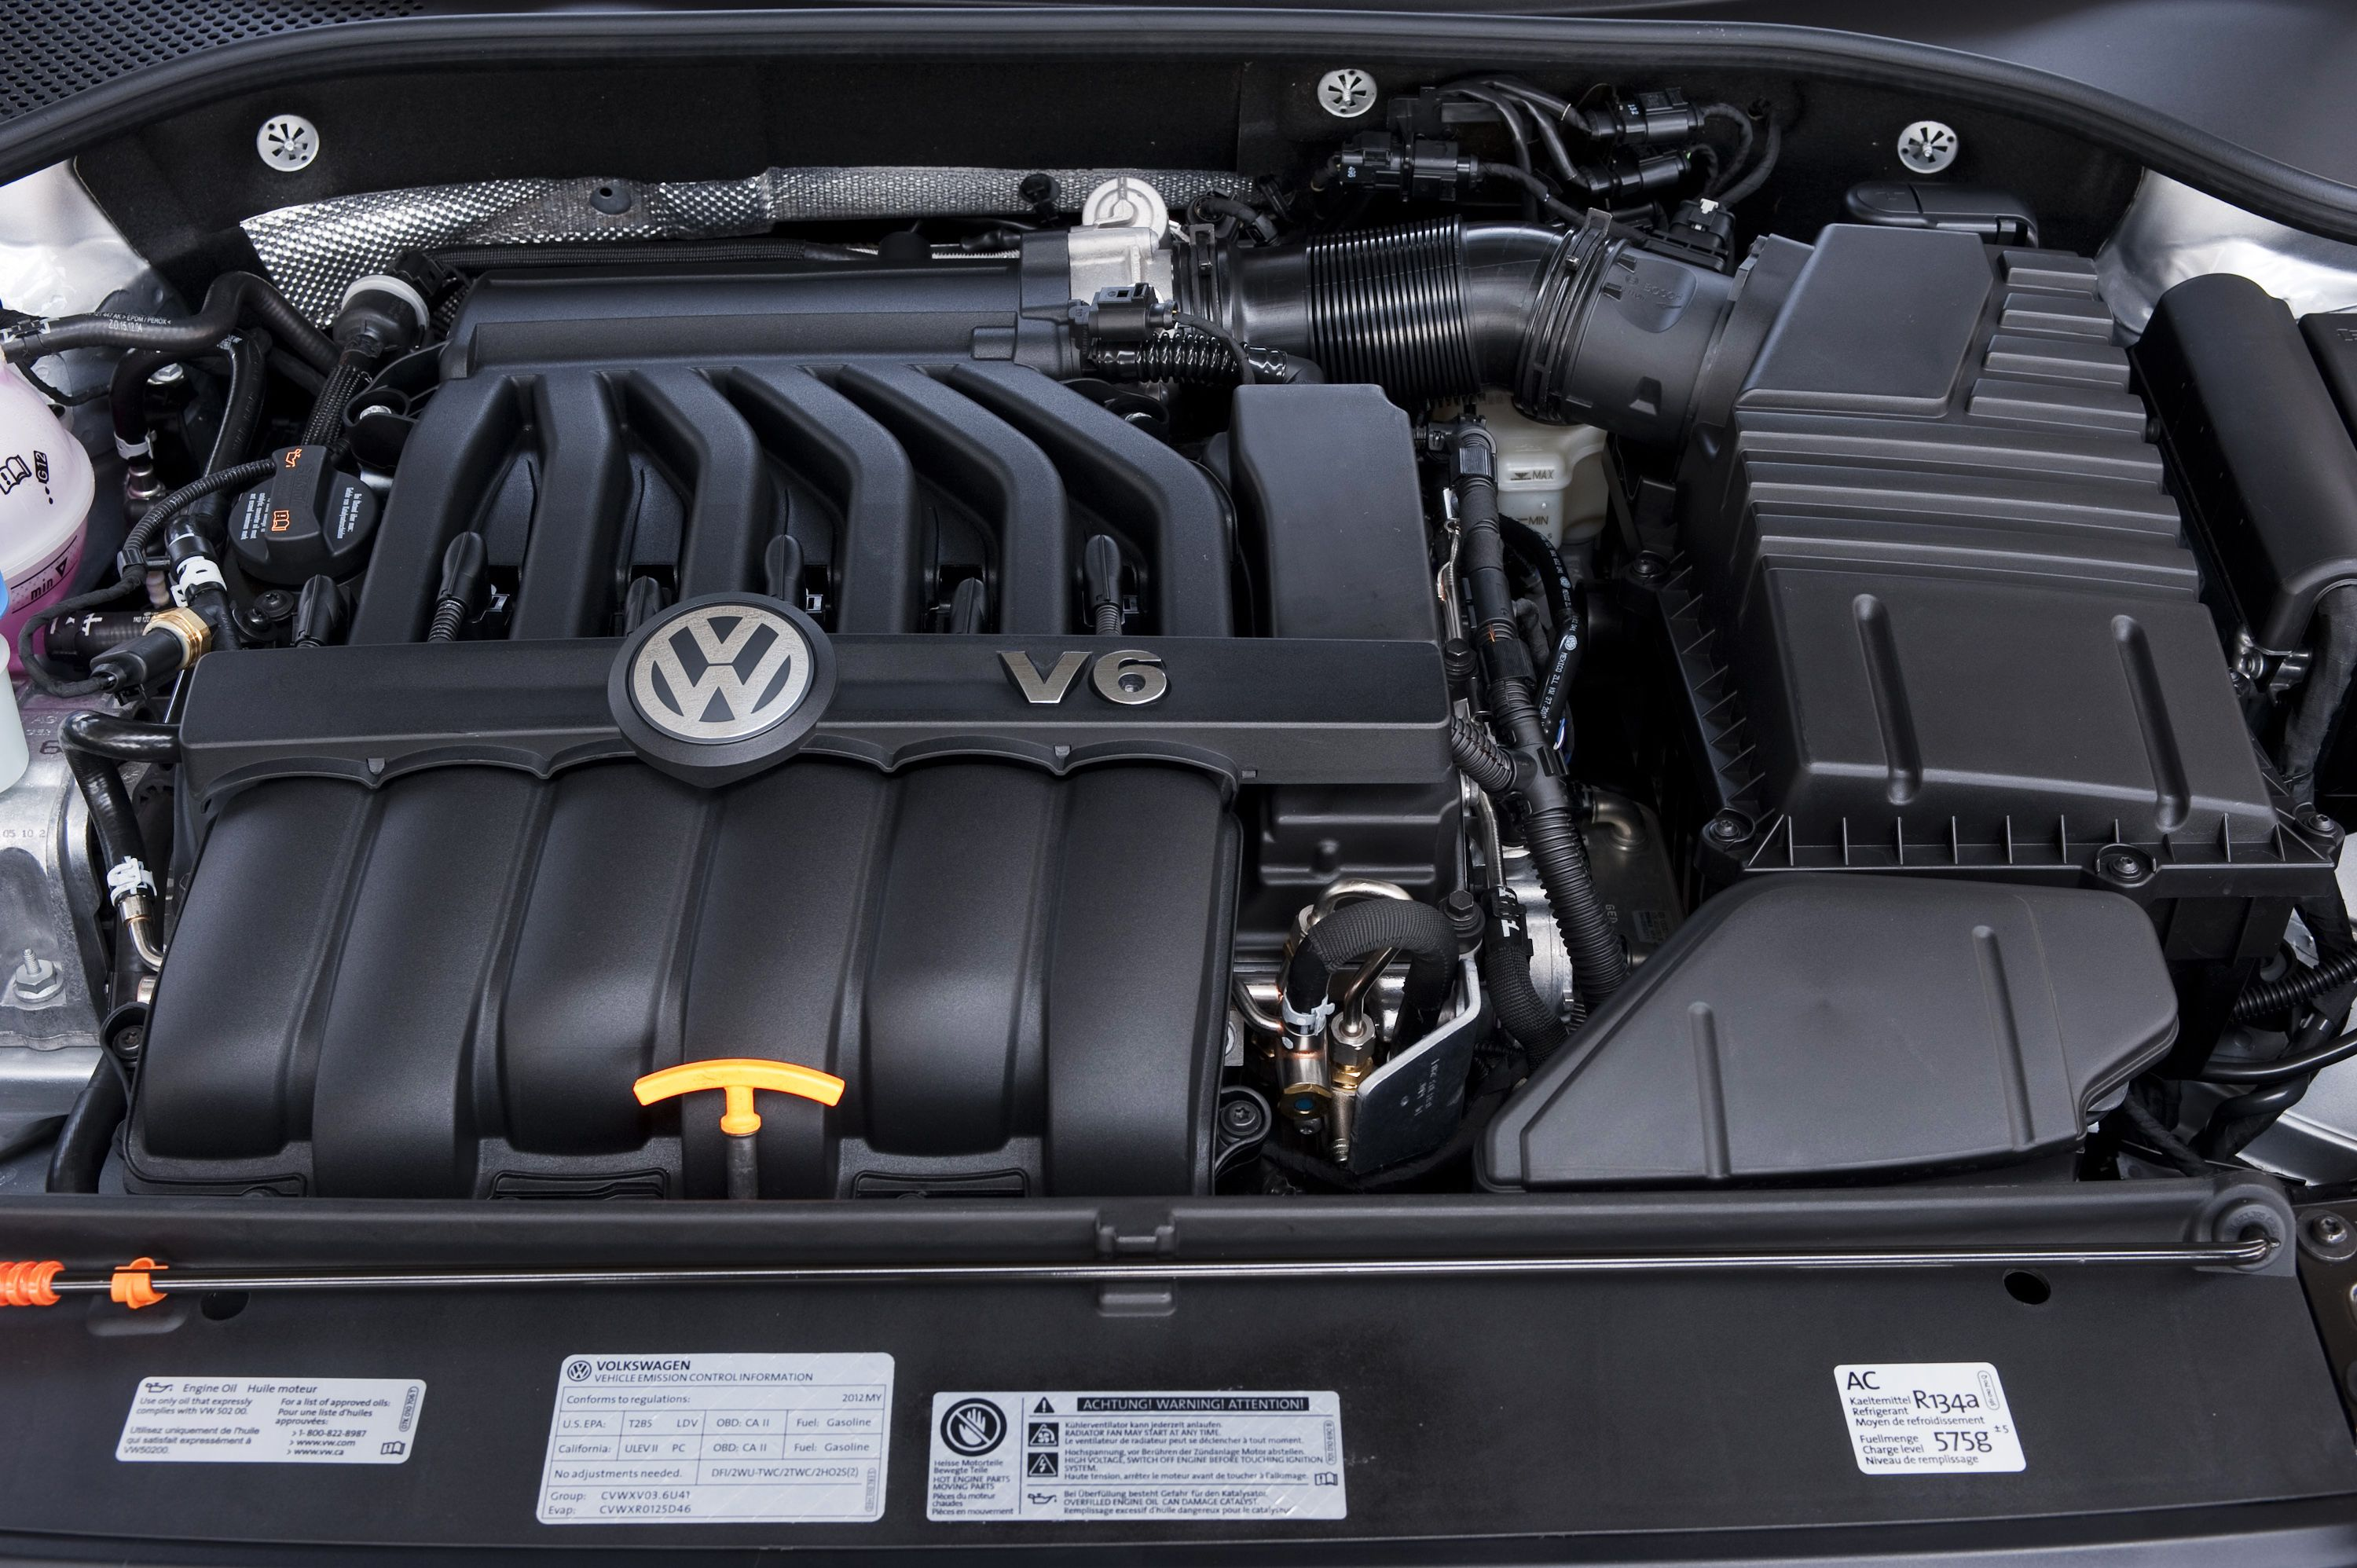 Pin by Used Engines on Volkswagen Used Engines | Volkswagen, Used engines, Sports